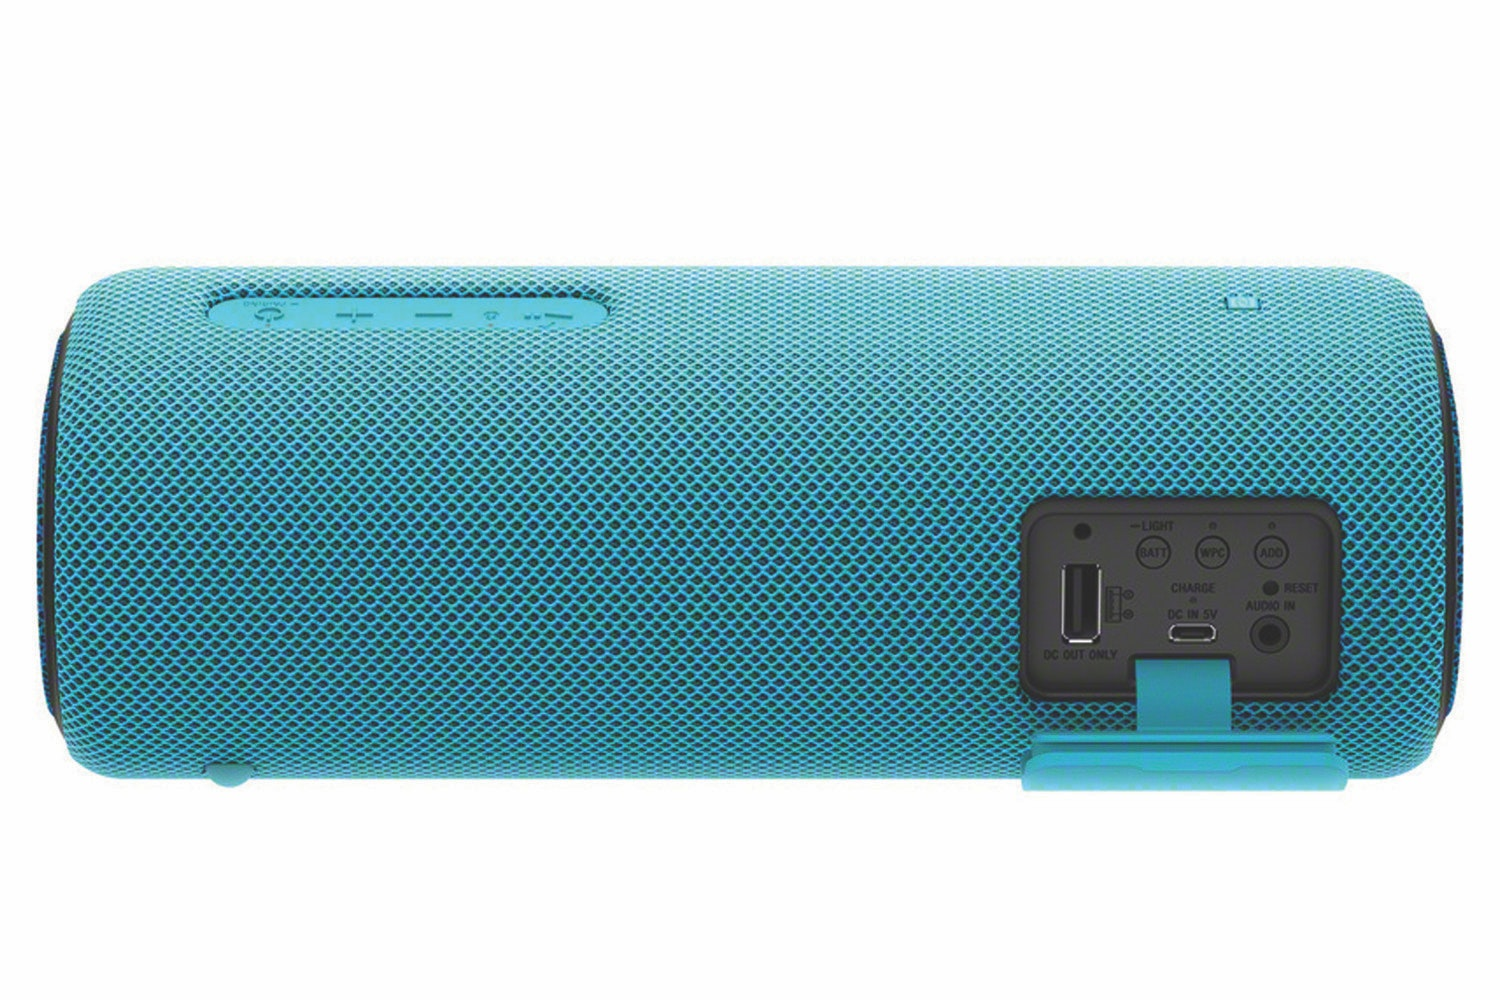 Sony SRSXB31L.CE7 Portable Waterproof Speaker with EXTRA BASS, 24 Hours Battery Life and Lighting Effects